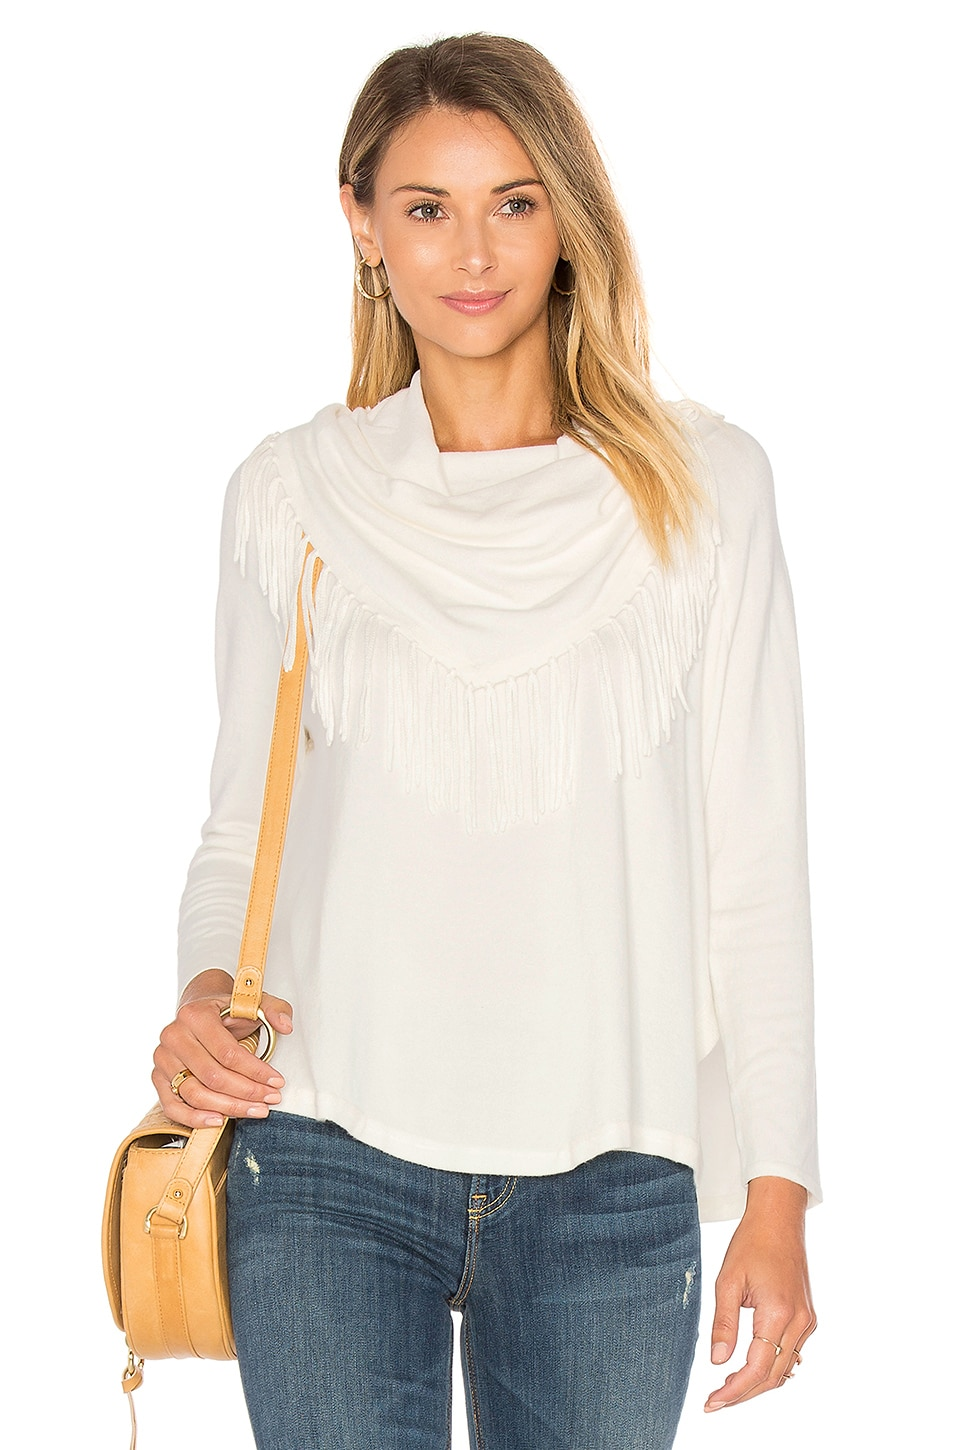 Toulouse Fringe Turtleneck Sweater by Central Park West